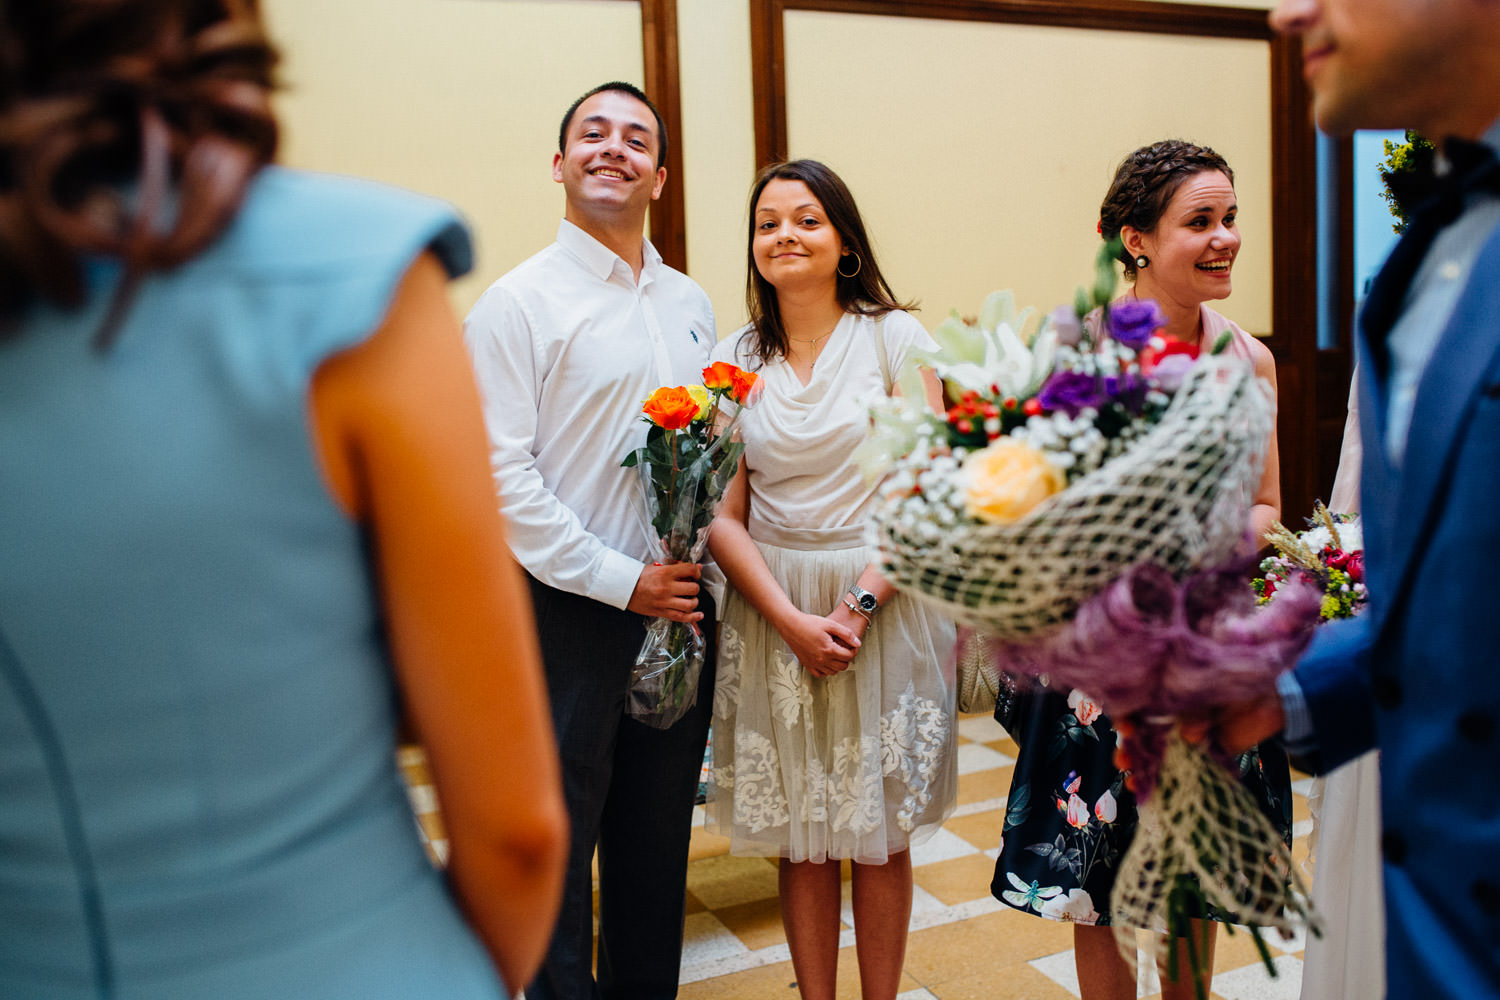 Bogdan & Luiza civil wedding Pitesti-1011